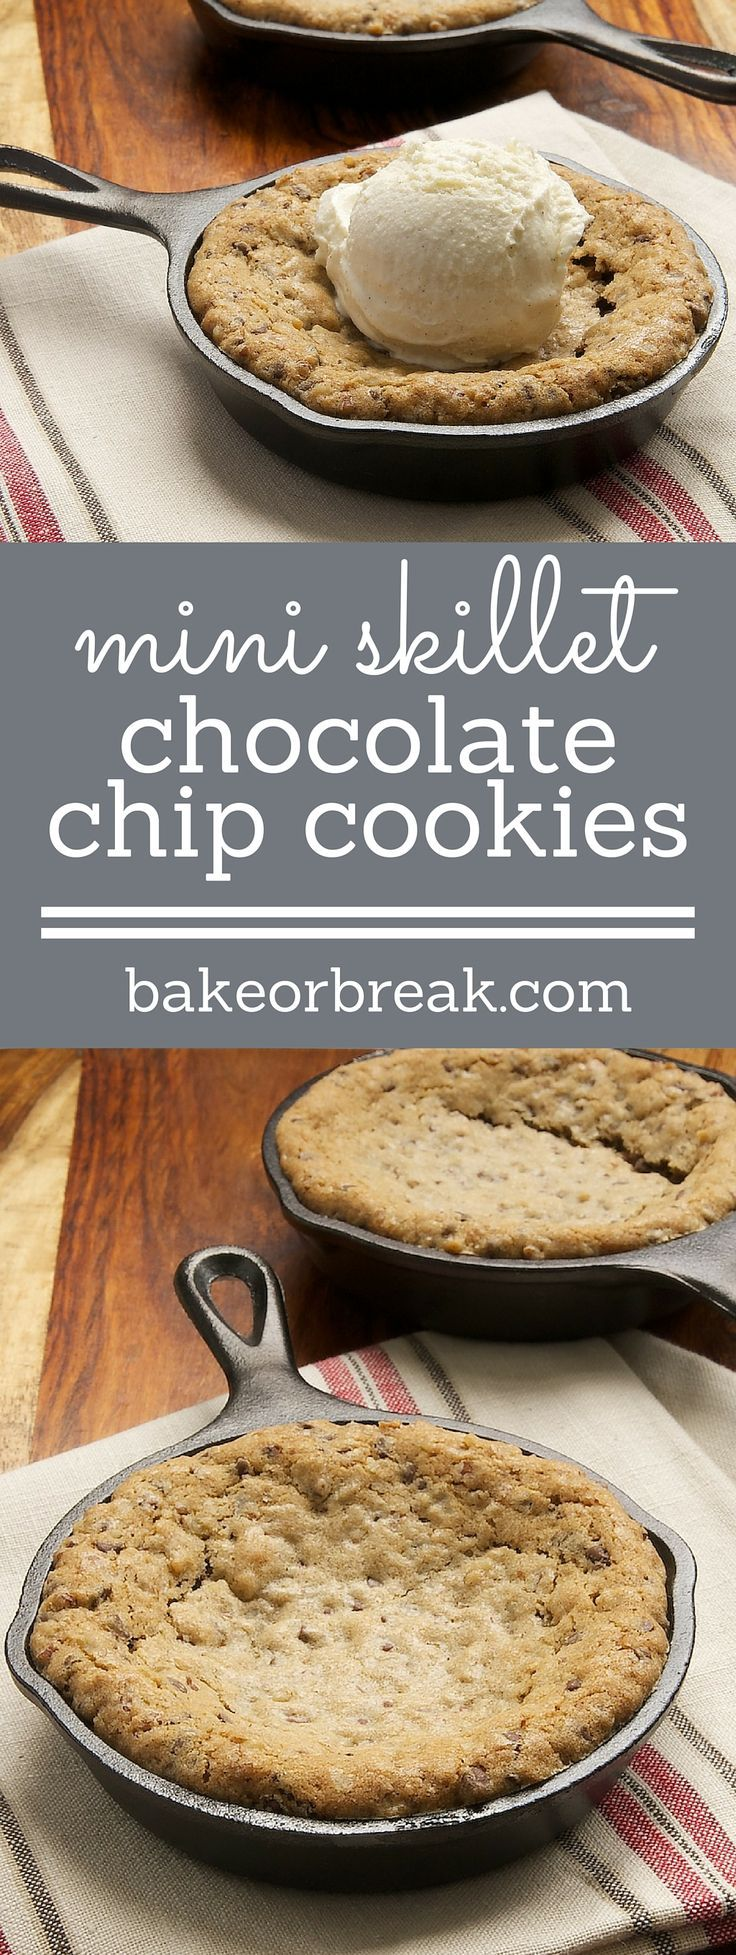 Mini Skillet Chocolate Chip Cookies are the perfect size to share with ...